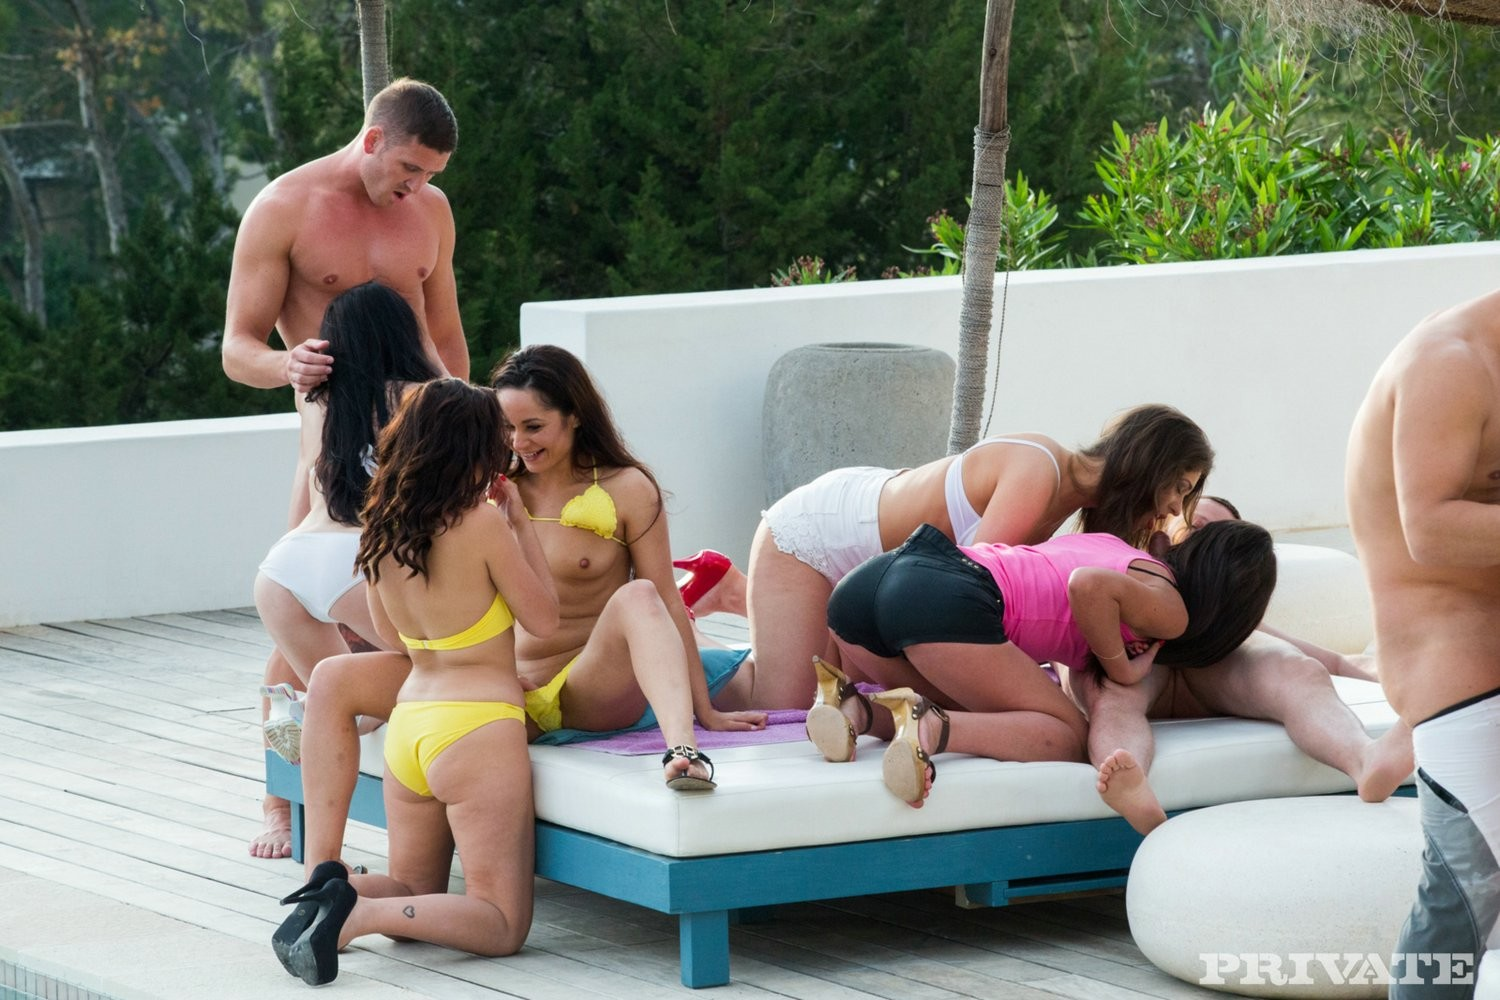 Anissa kate smoking in a real european sexual act get-together